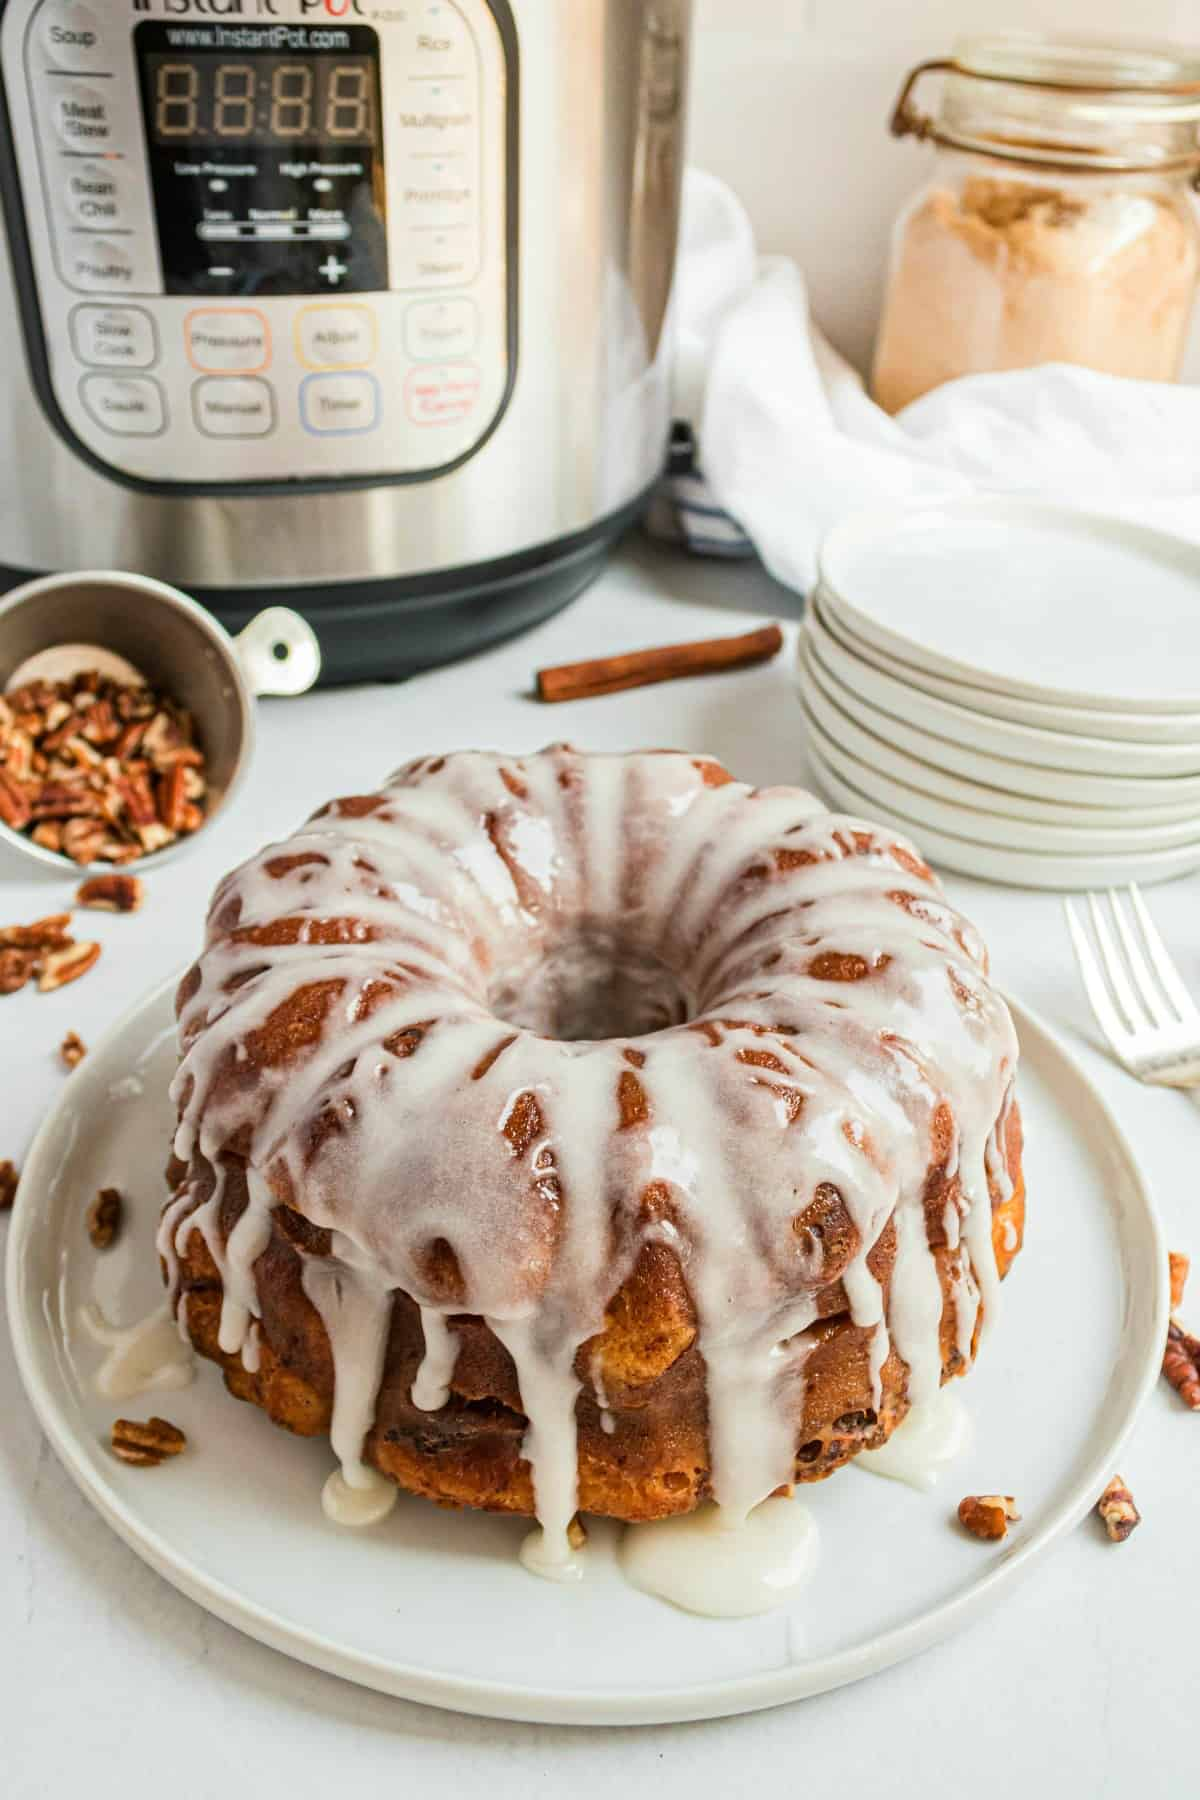 Cinnamon roll bread on a white serving plate with instant pot in background.